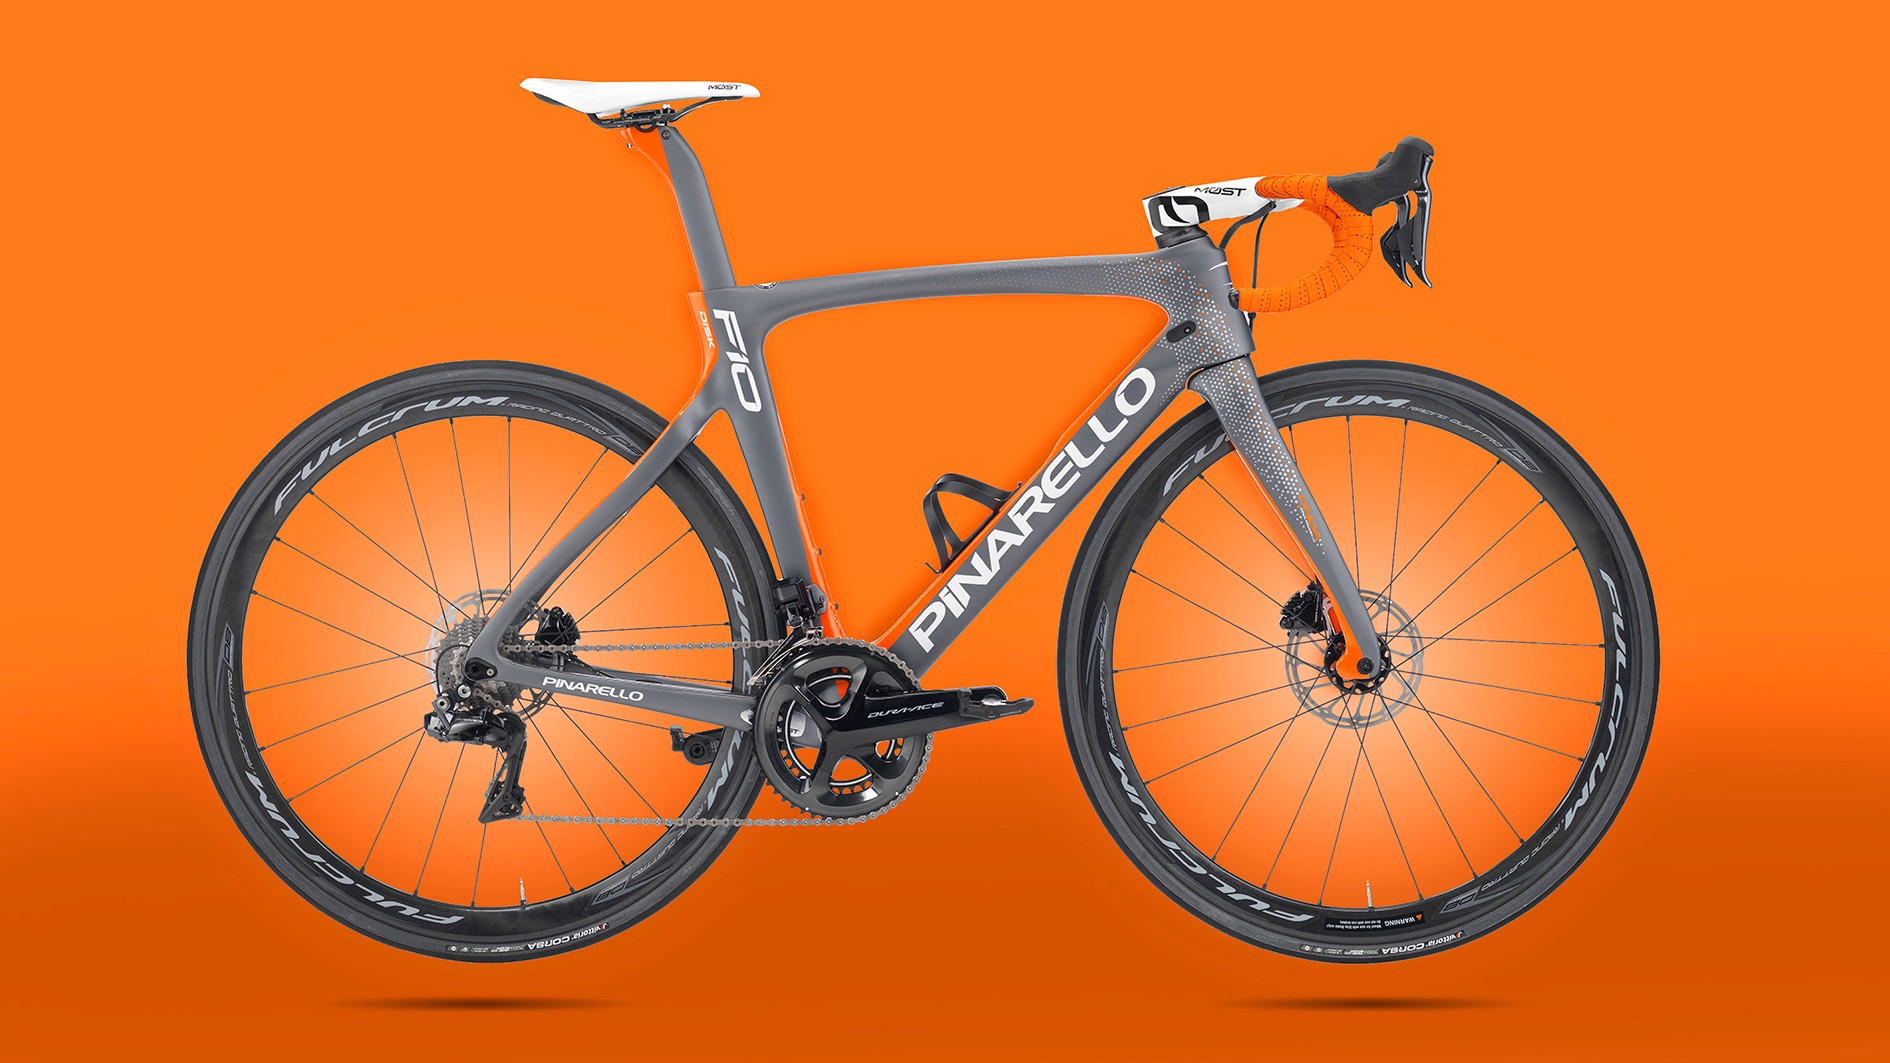 The new Pinarello Dogma F10 disc looks resplendent with its powerful new brakes